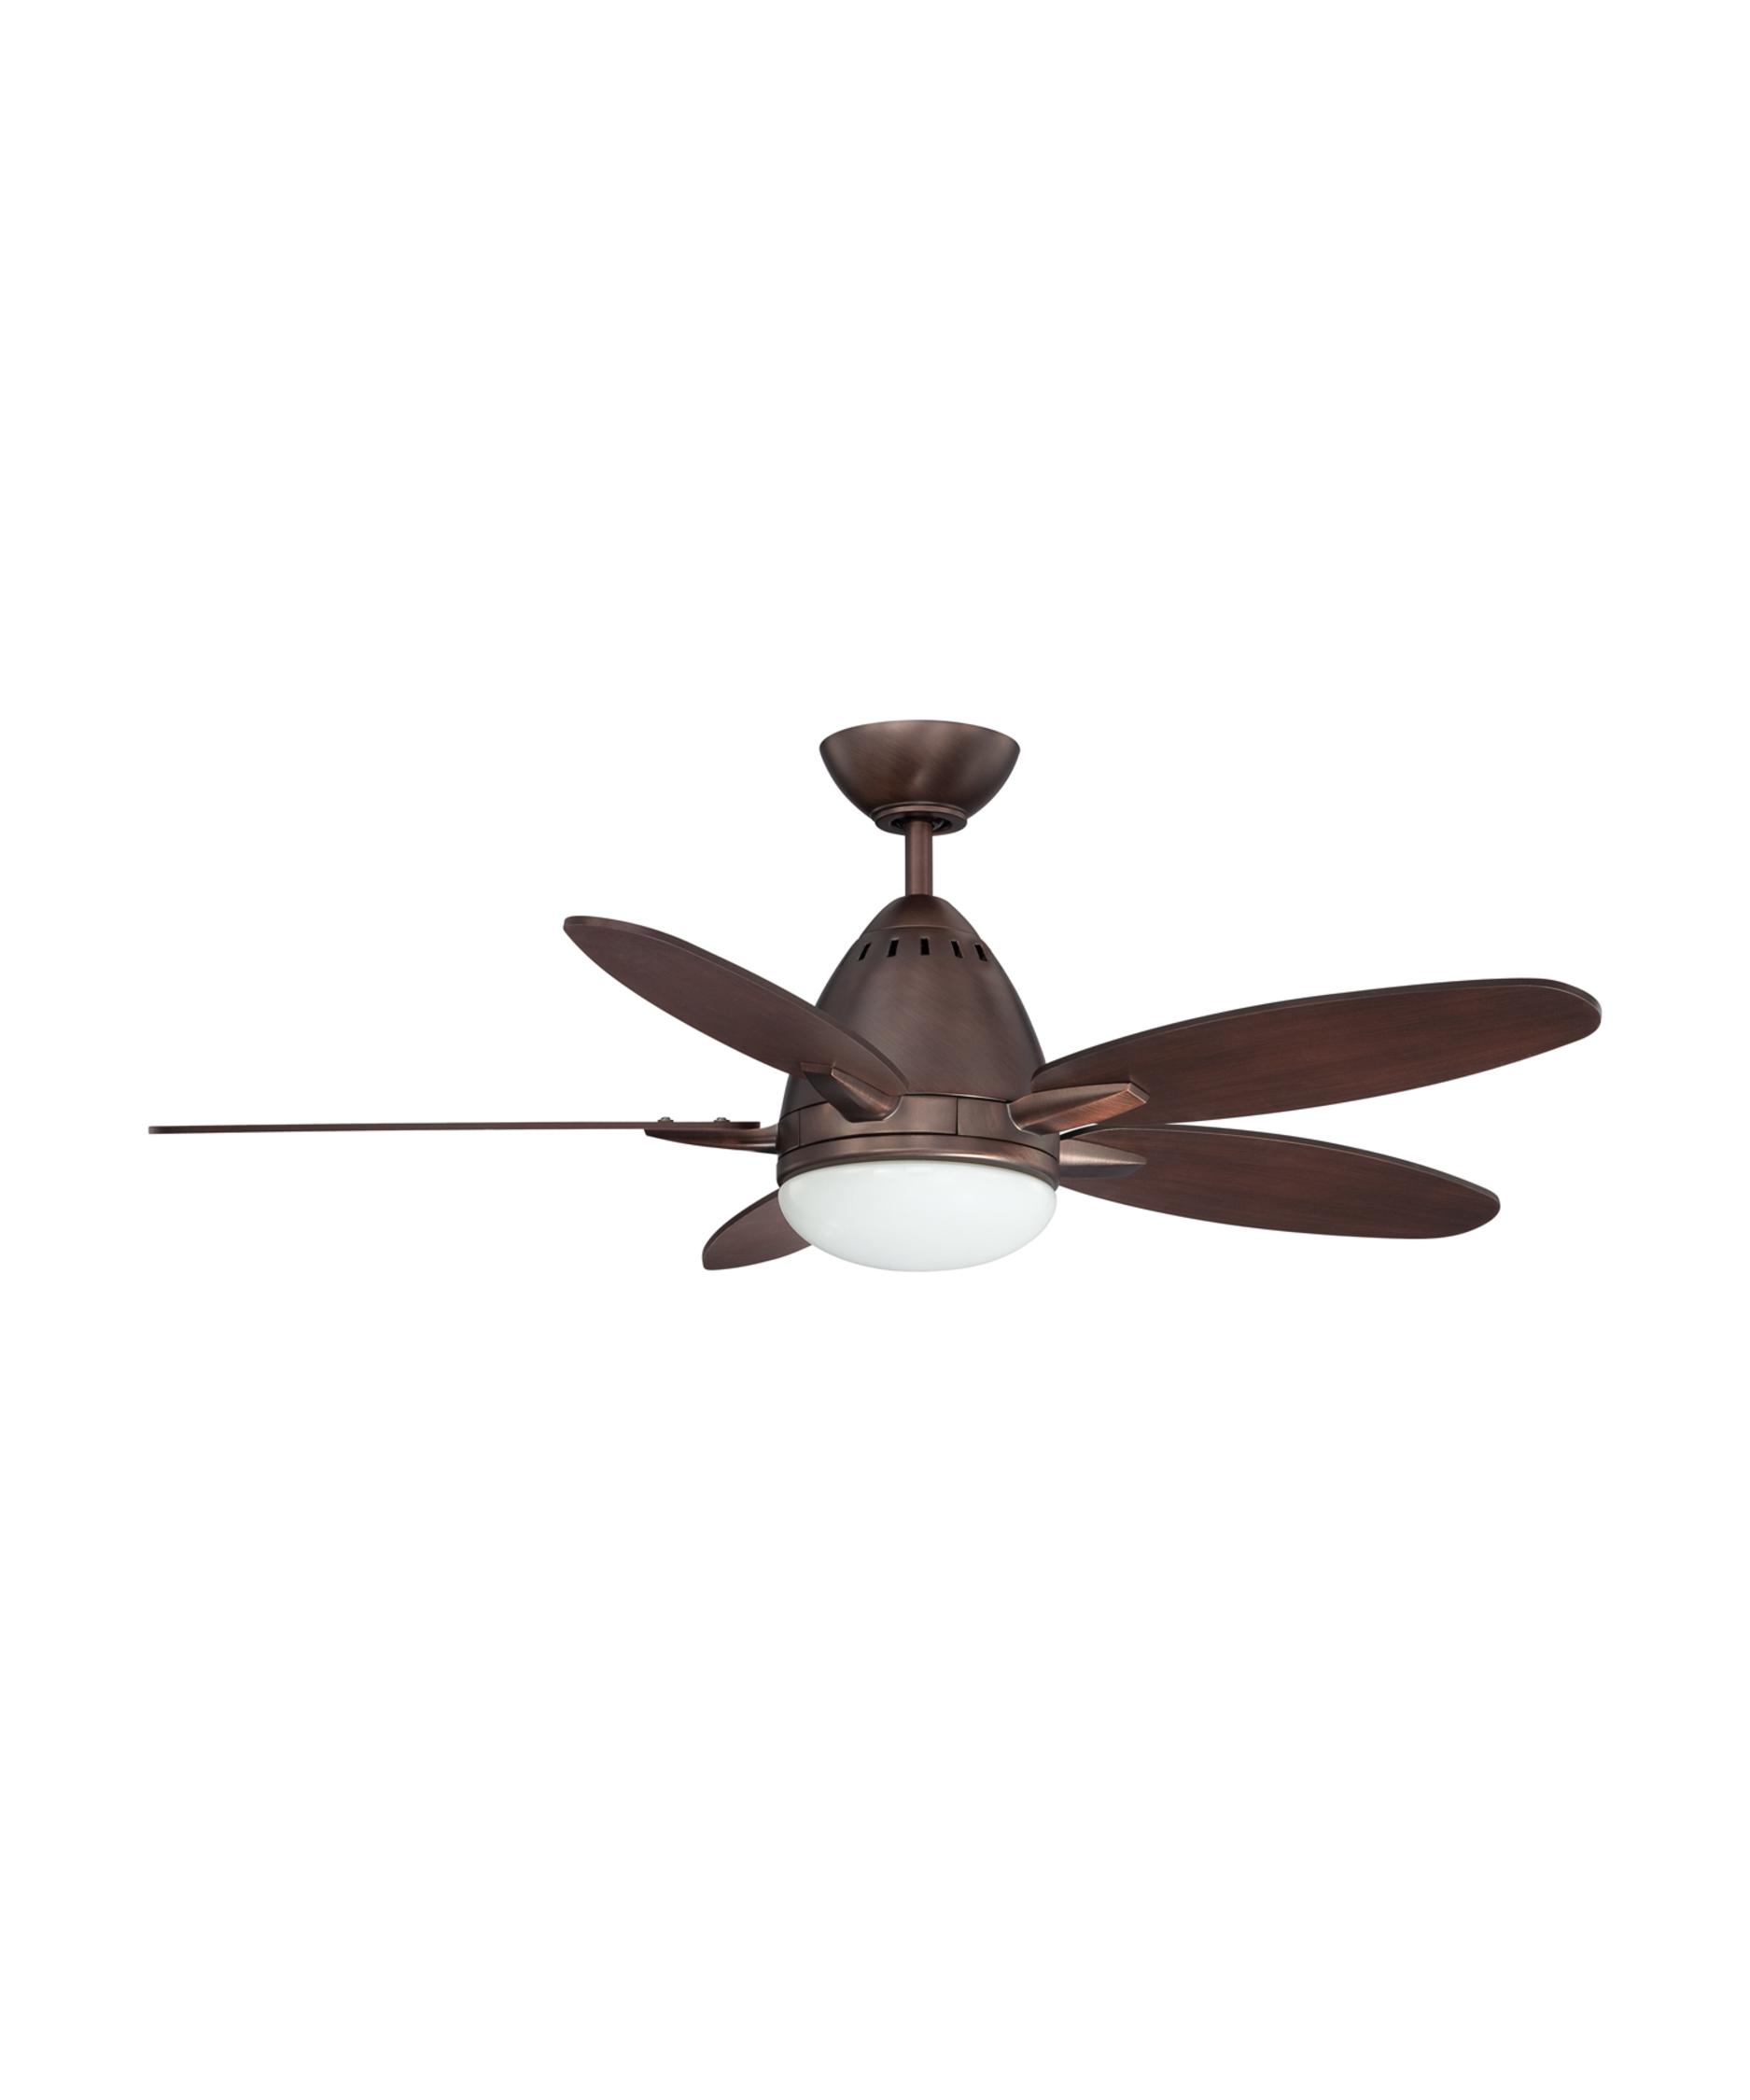 Kendal Lighting AC19344 Navaton 44 Inch Ceiling Fan With